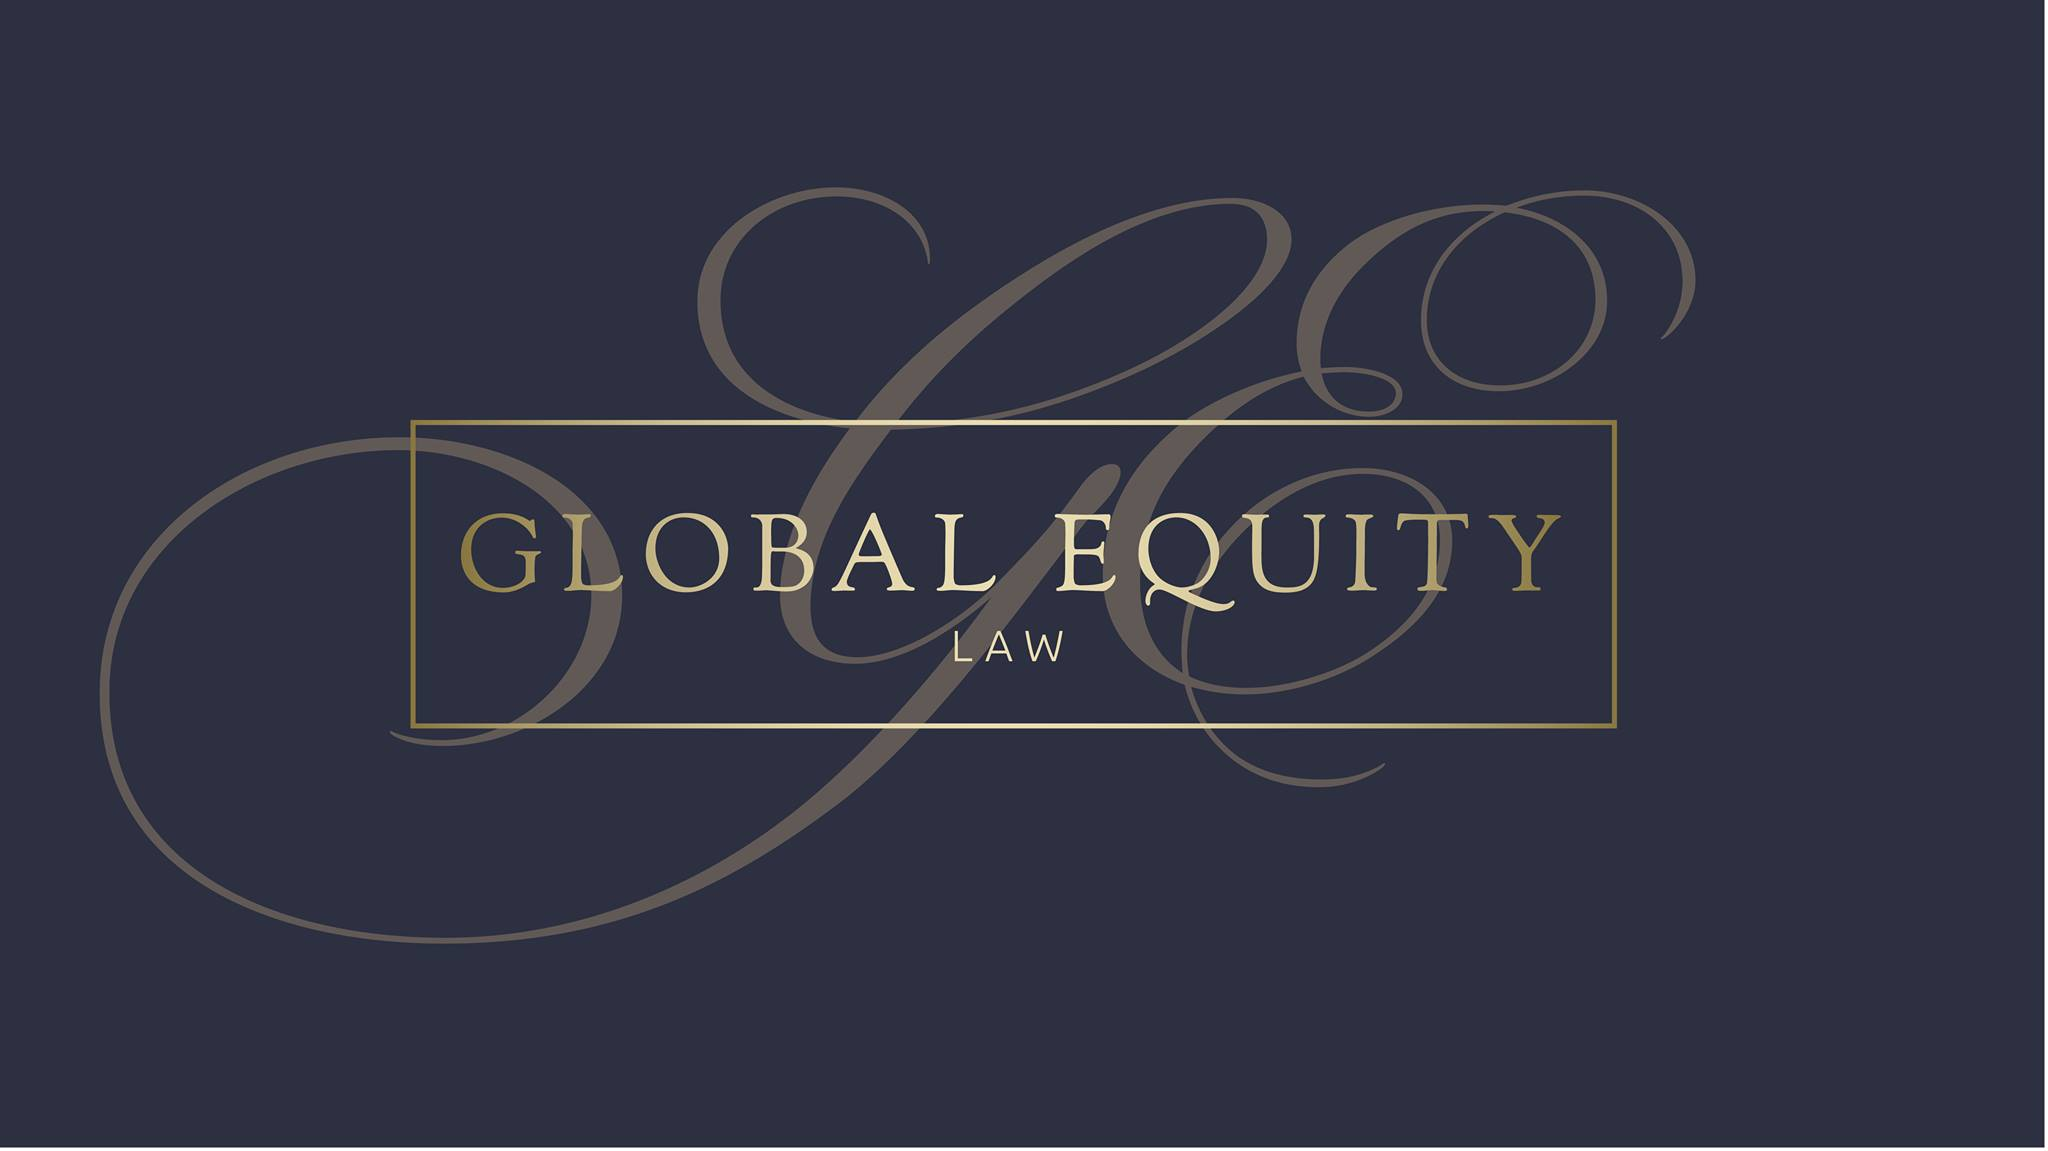 Global Equity Law